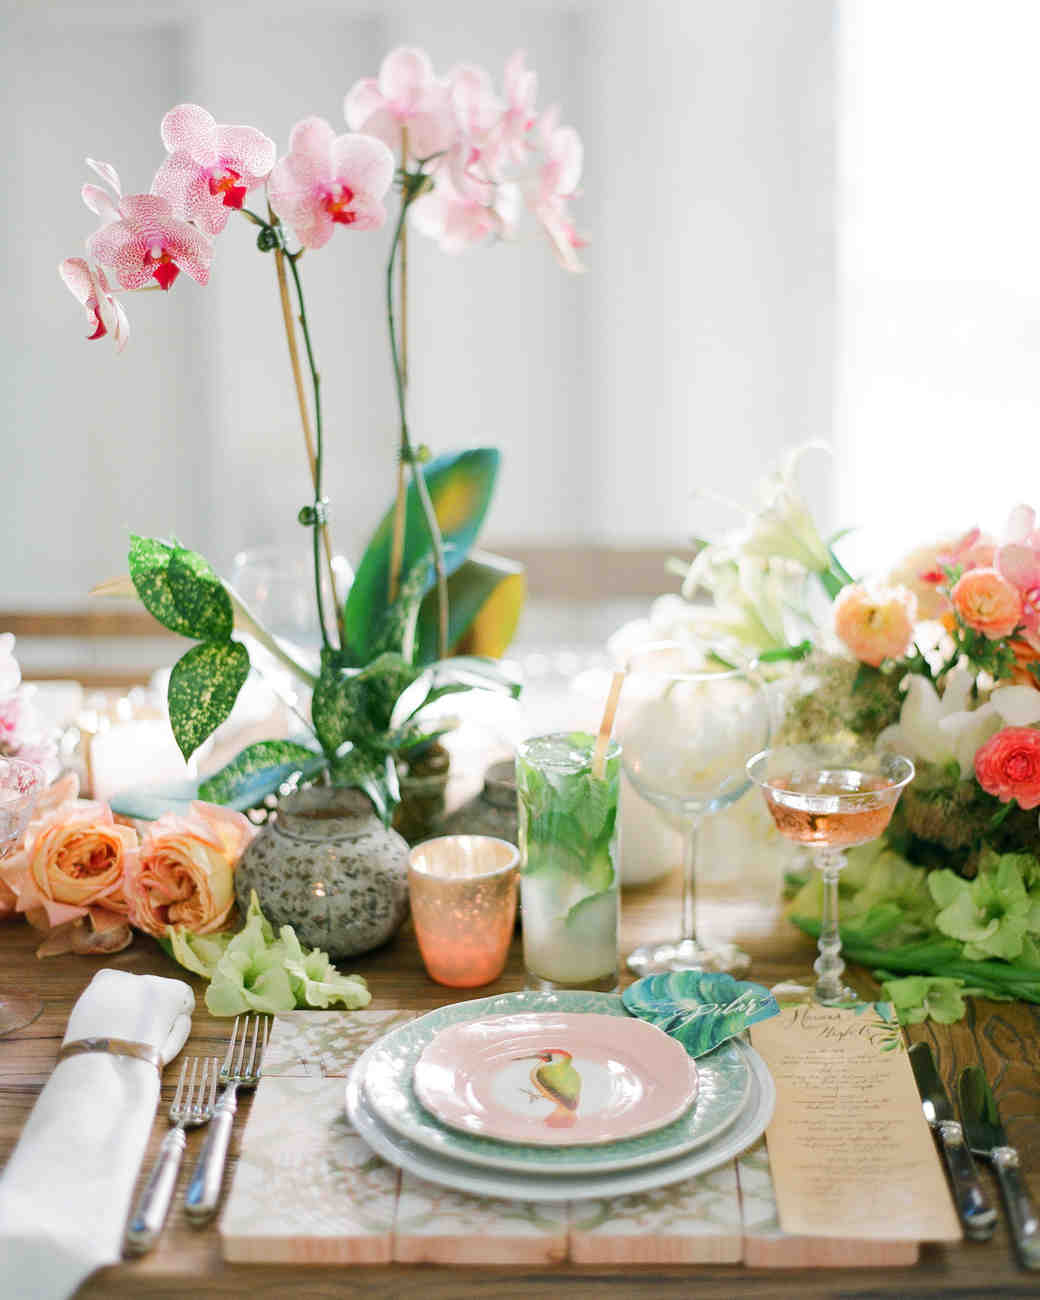 Tropical Place Setting with Orchids and Patterned Plates & Island Time: 33 Tropical Wedding Ideas We Love   Martha Stewart Weddings